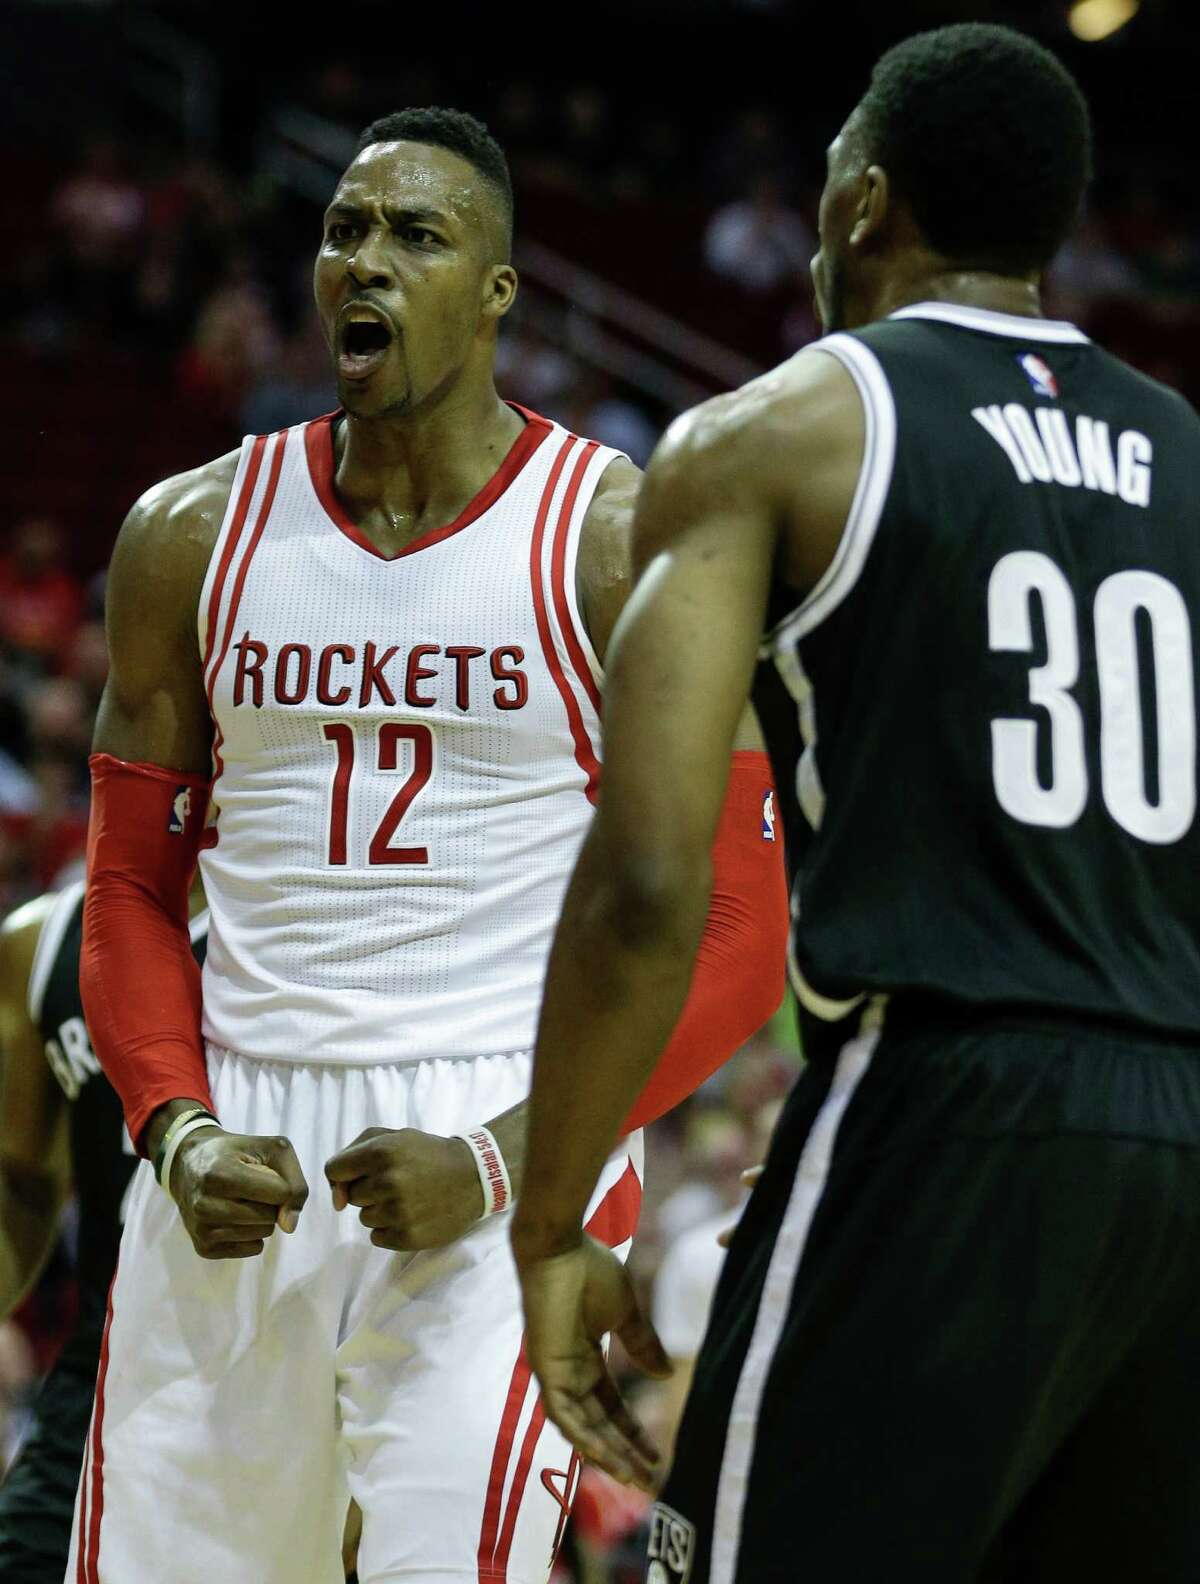 Houston Rockets center Dwight Howard (12) reacts after scoring on Brooklyn Nets forward Thaddeus Young (30) during the first half of an NBA basketball game at Toyota Center Wednesday, Nov. 11, 2015, in Houston. ( Brett Coomer / Houston Chronicle )